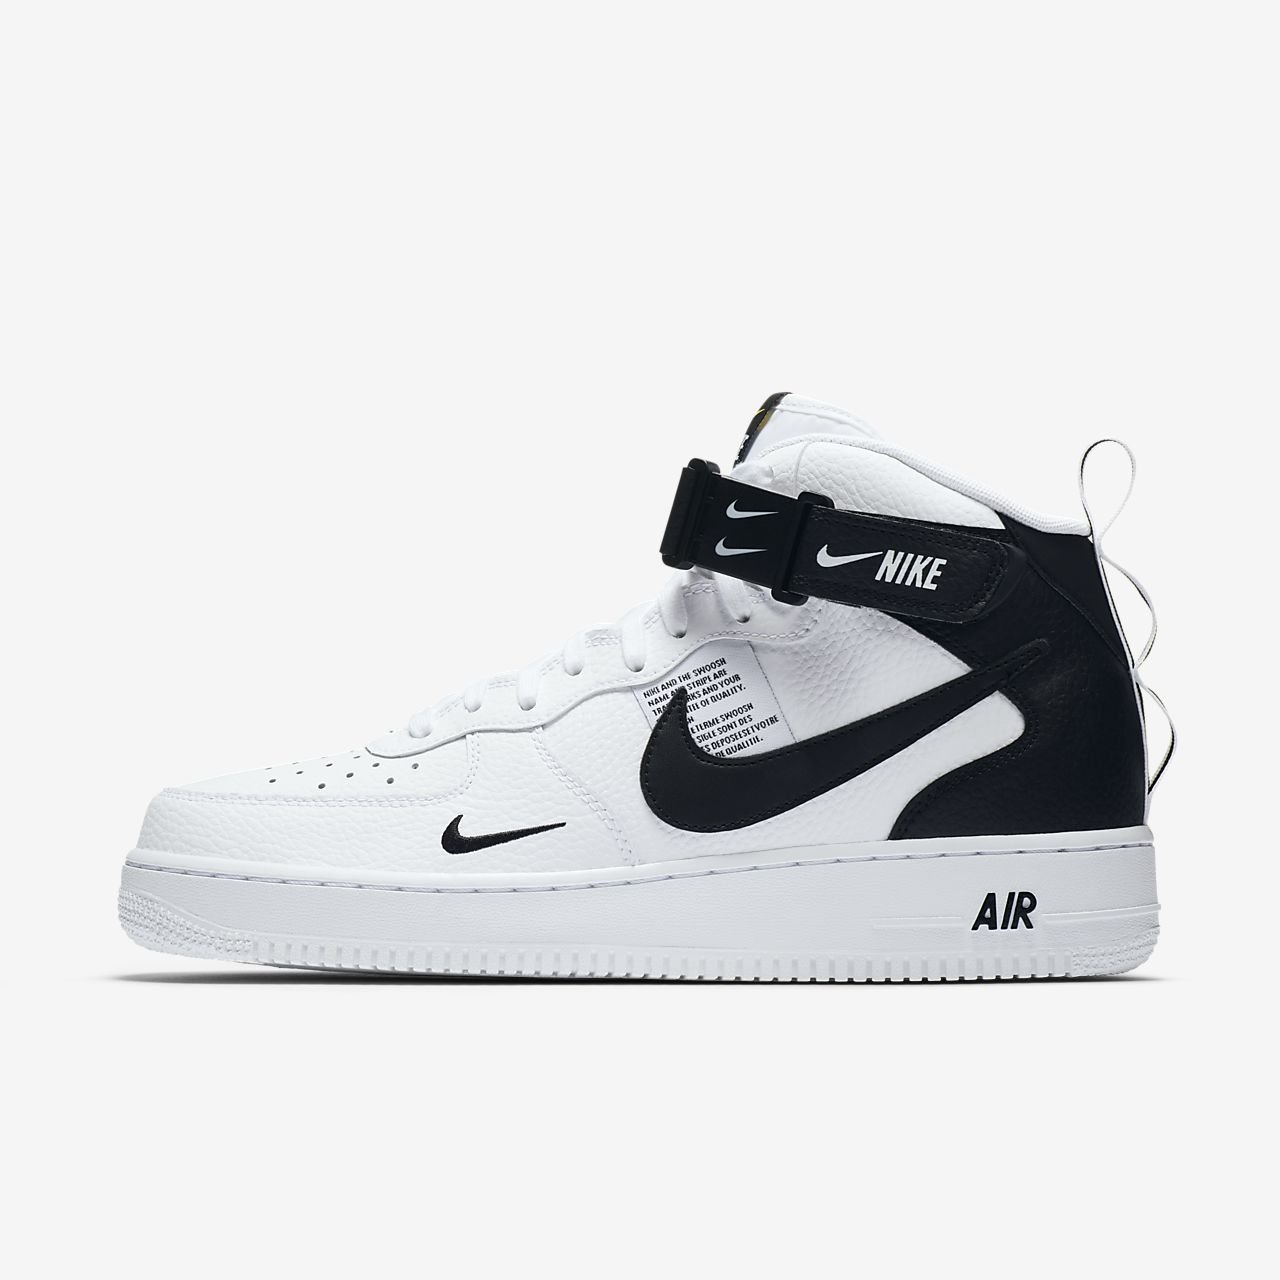 sports shoes b6698 4dc3e Nike Air Force 1 07 Mid LV8